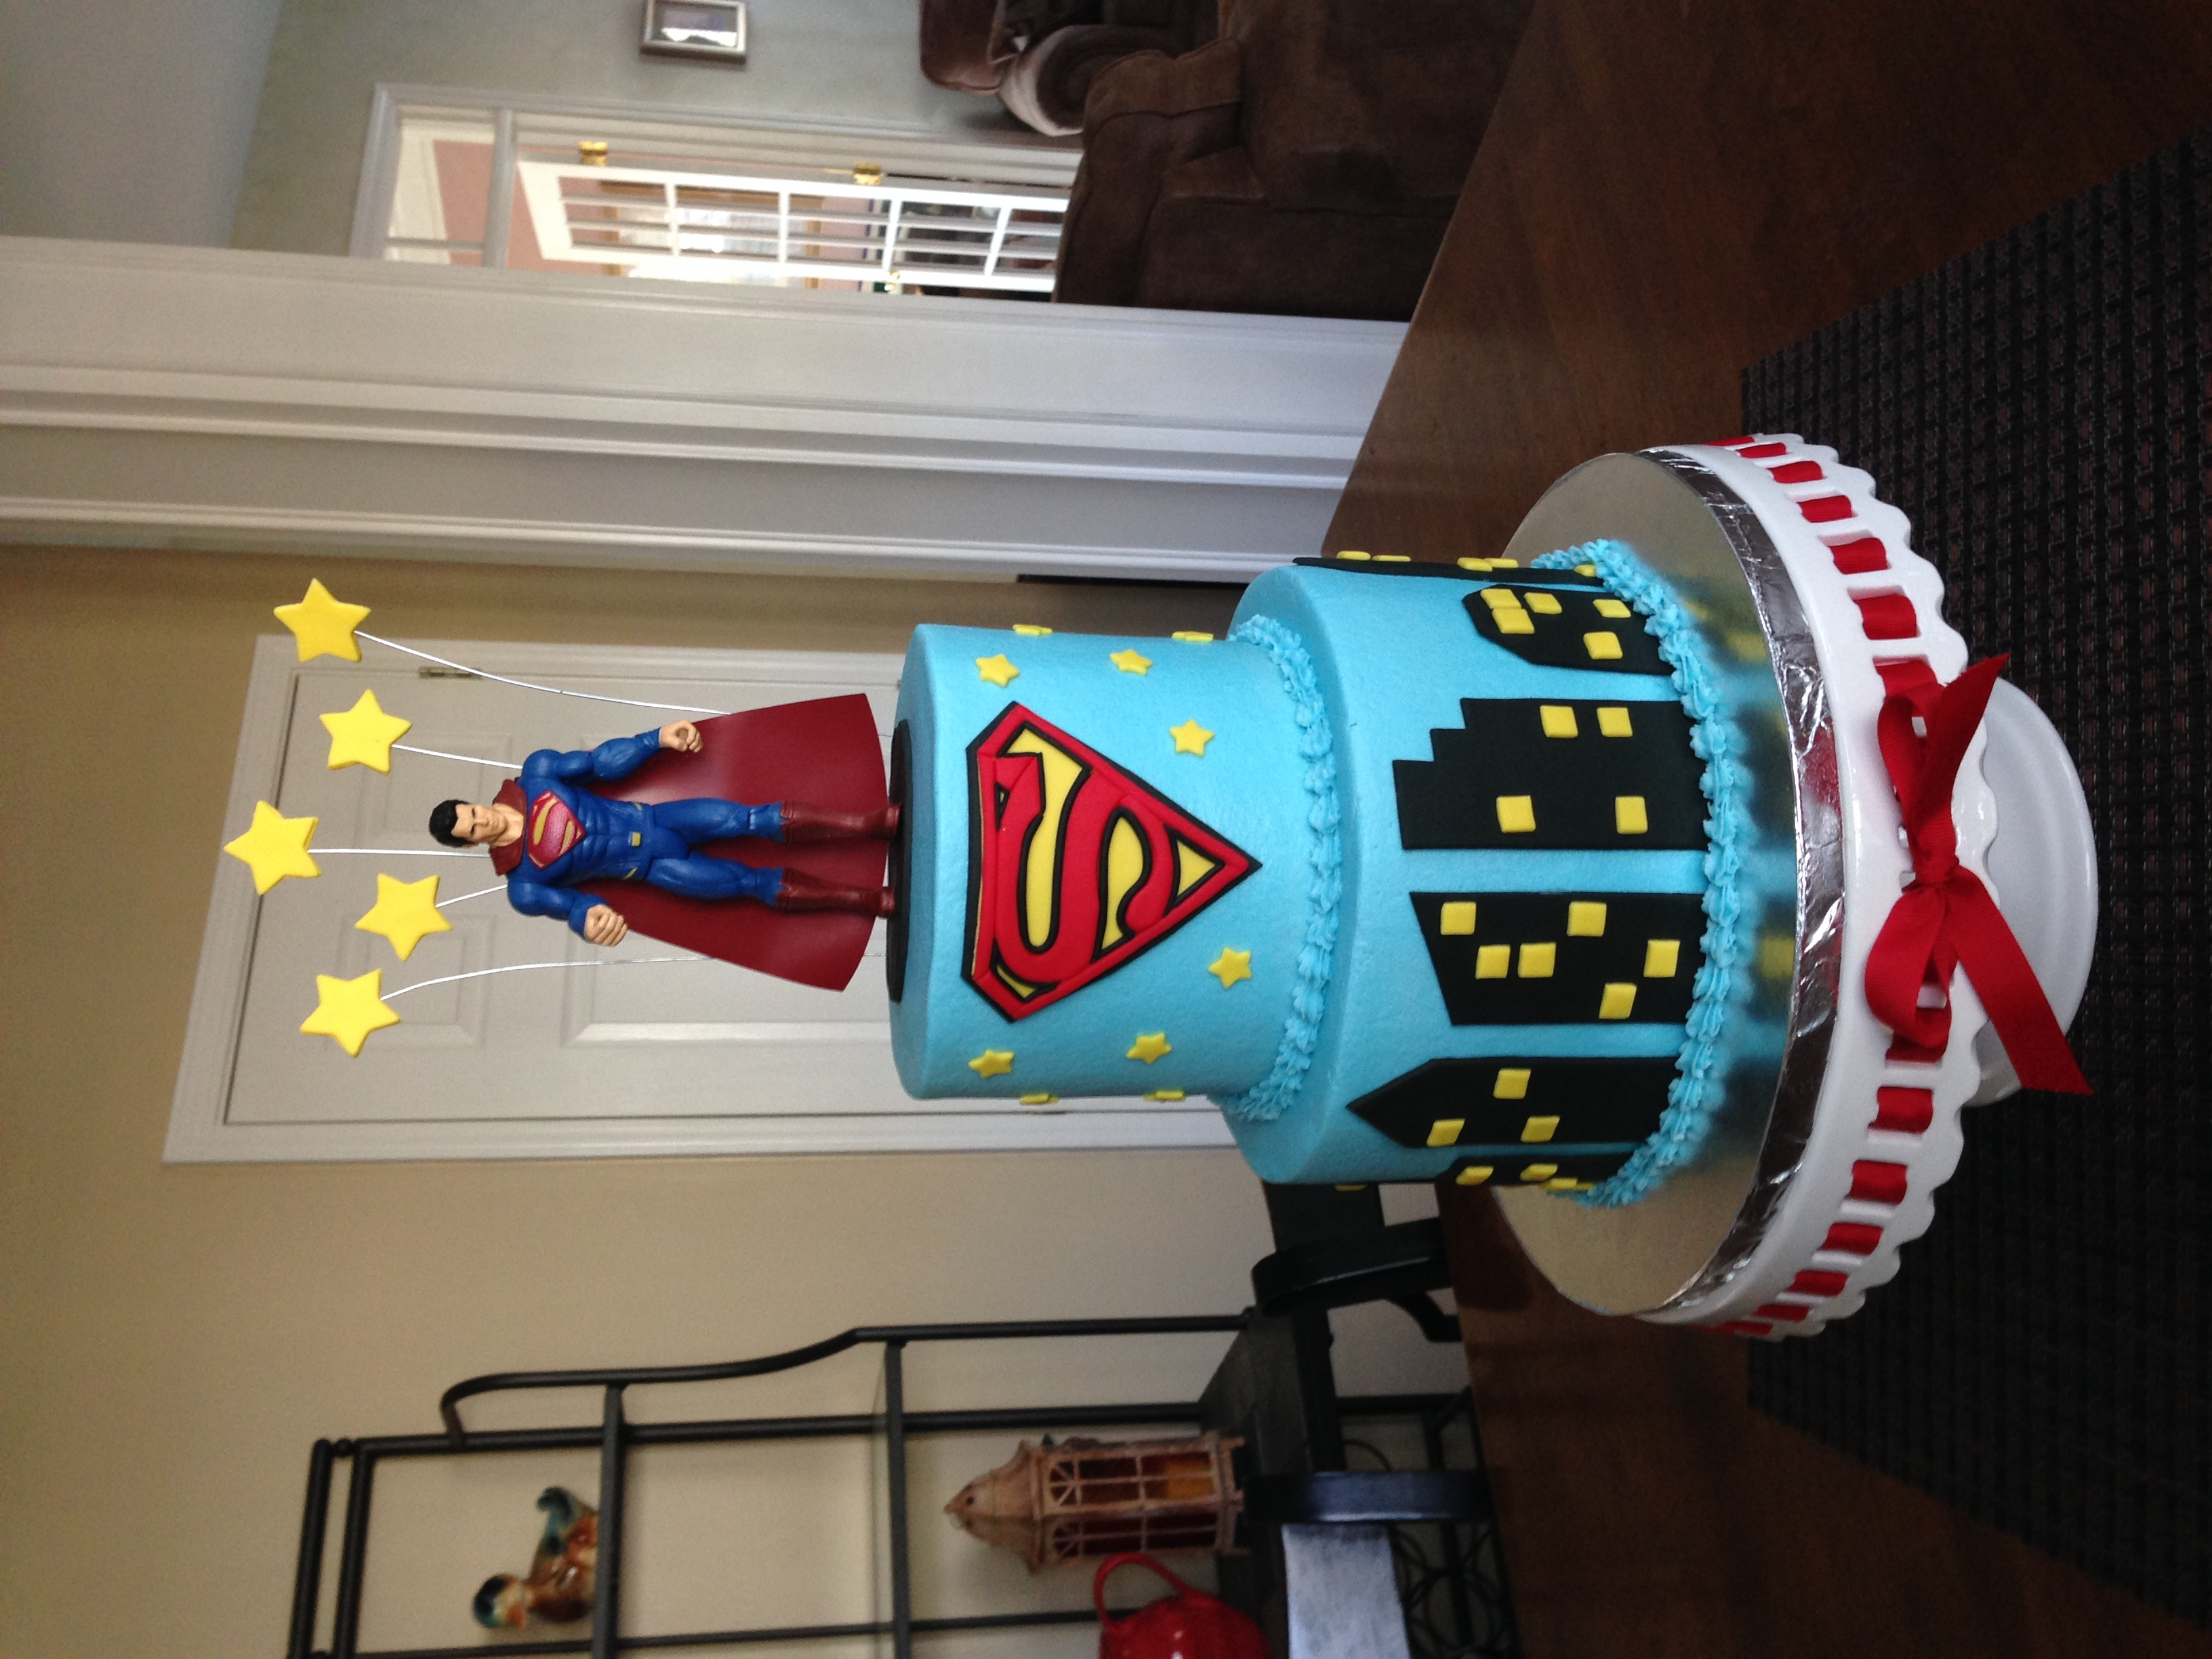 Superman Cake I made this Superman cake for my son-in-law's birthday.